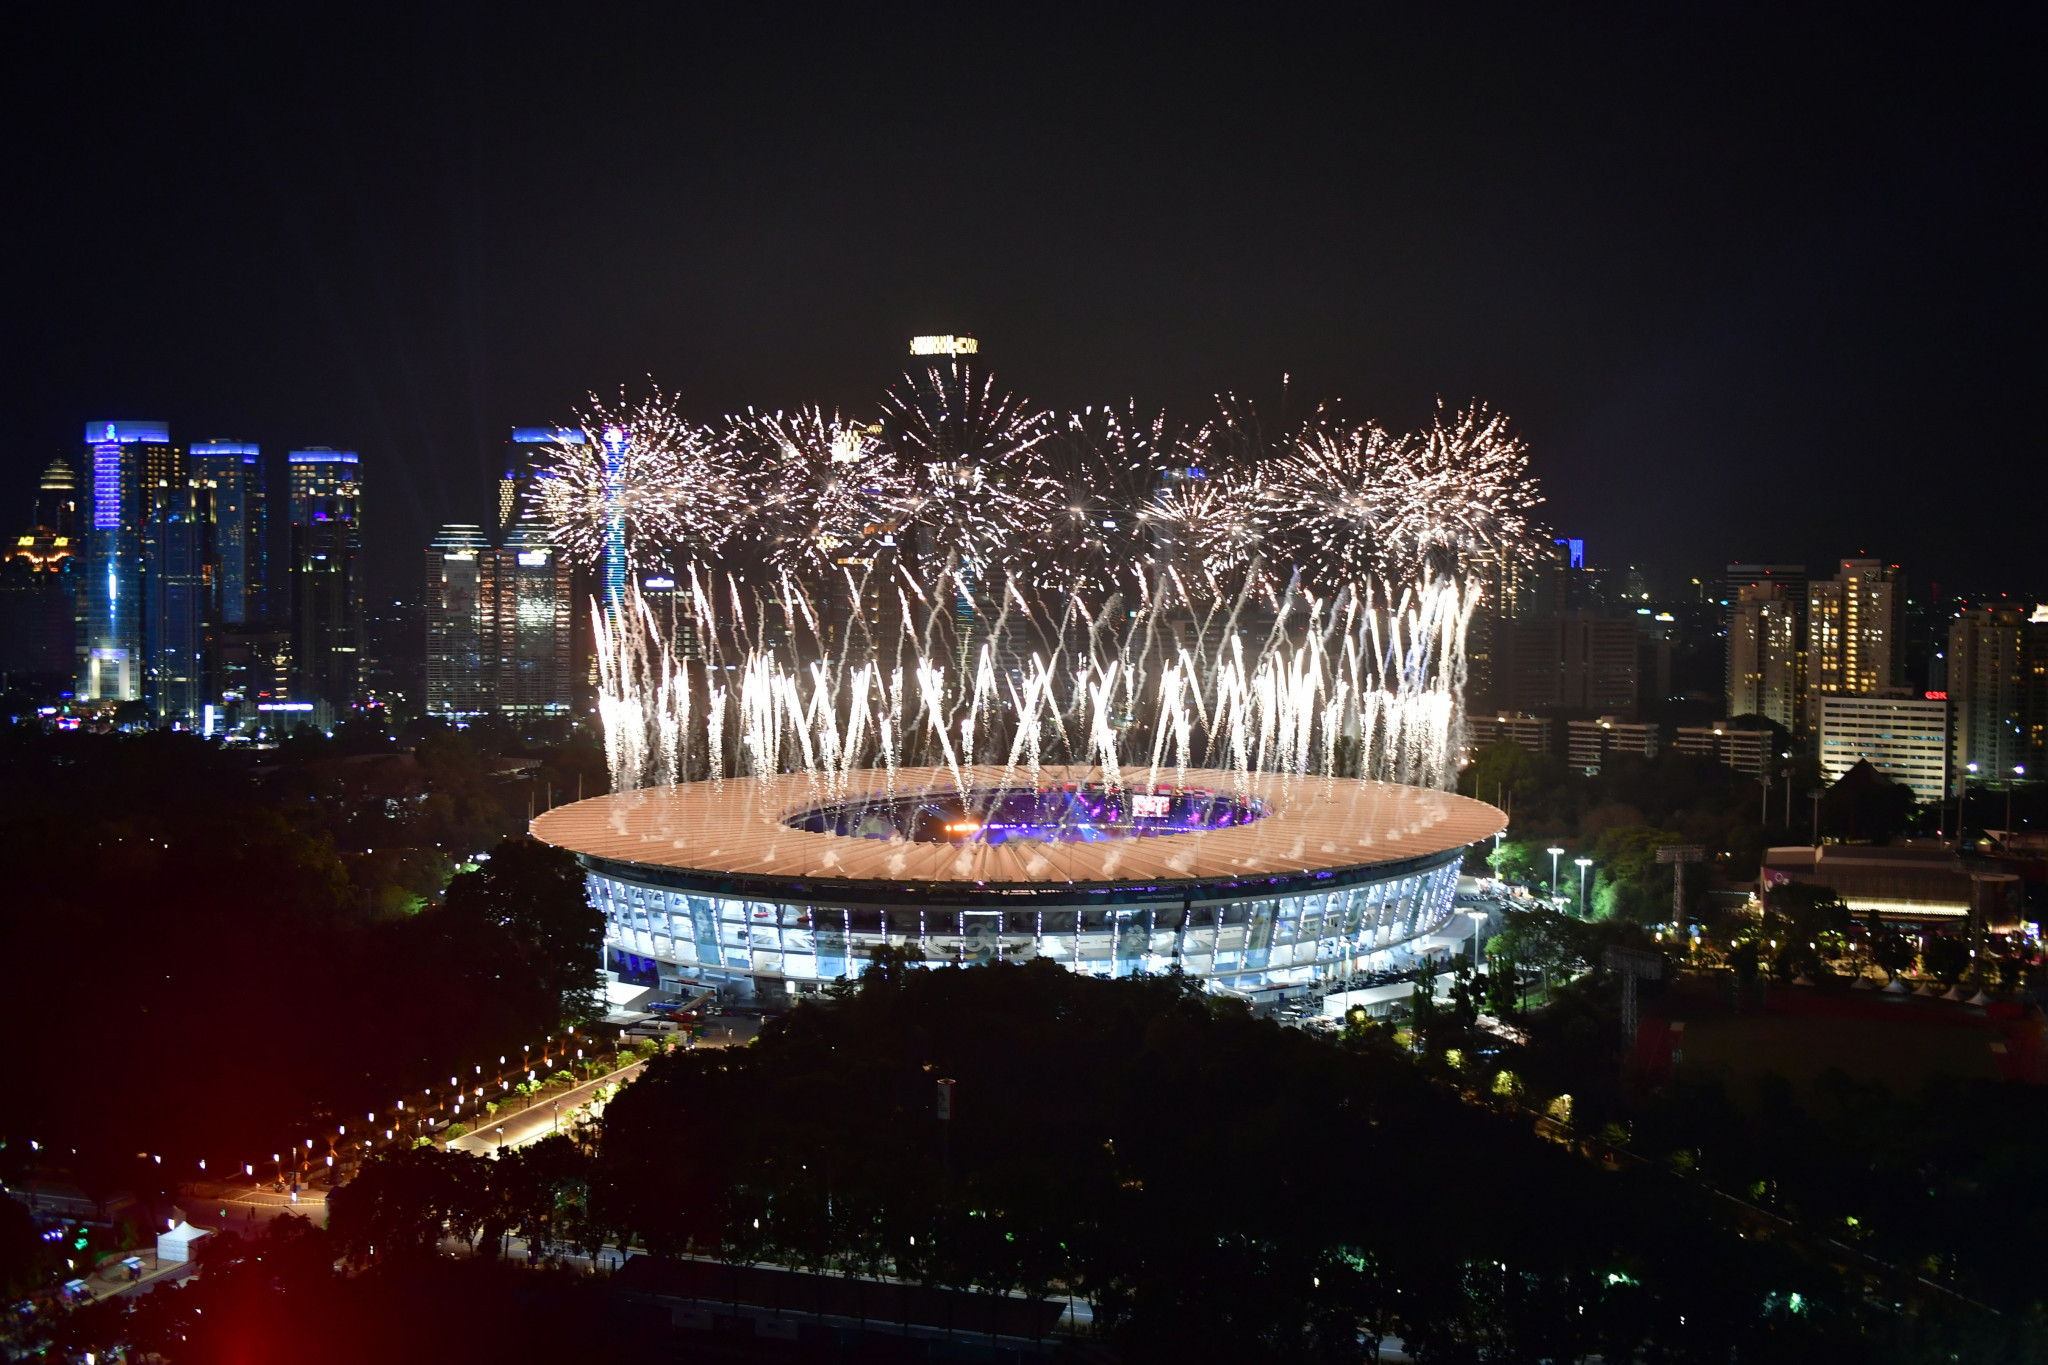 The 2018 Asian Games officially began today, with the Opening Ceremony at the Gelora Bung Karno Main Stadium ©Getty Images